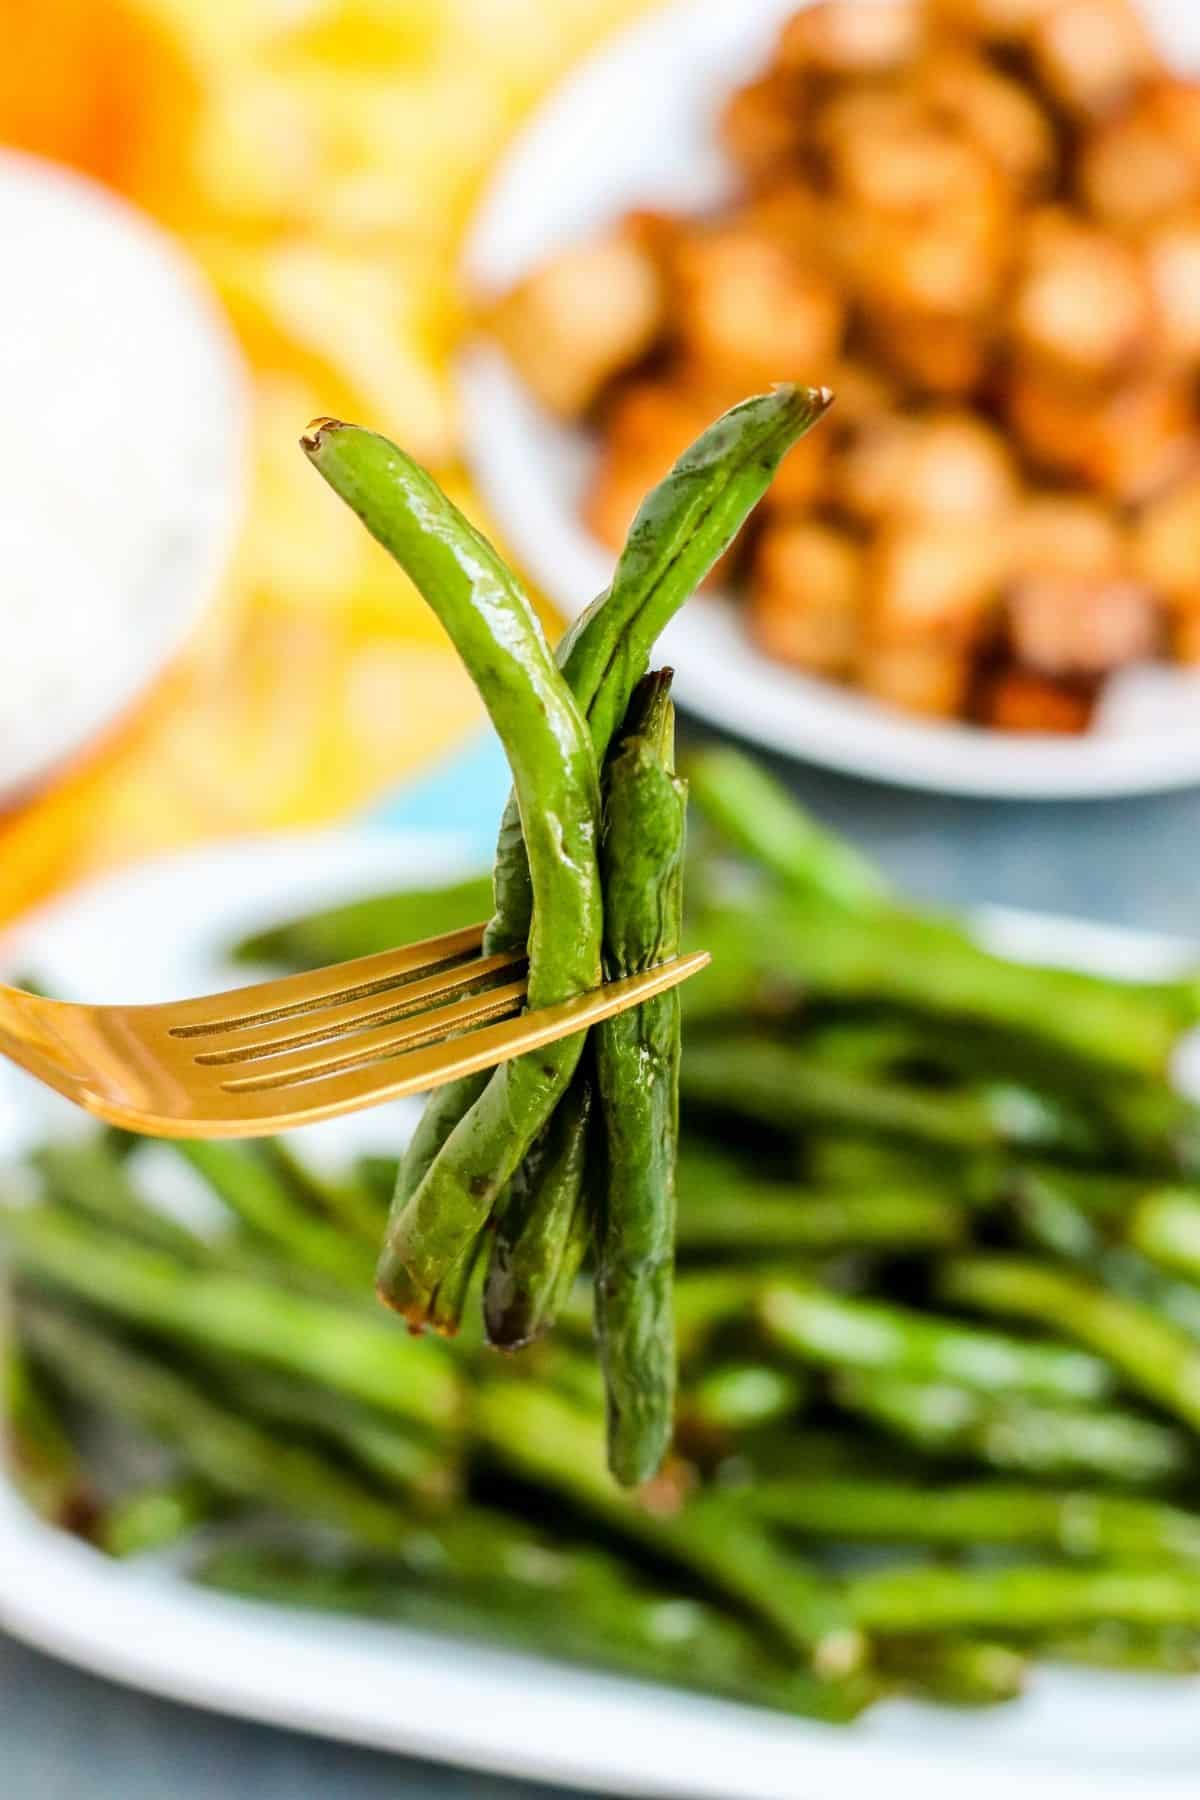 Close up photo of green beans on a gold fork